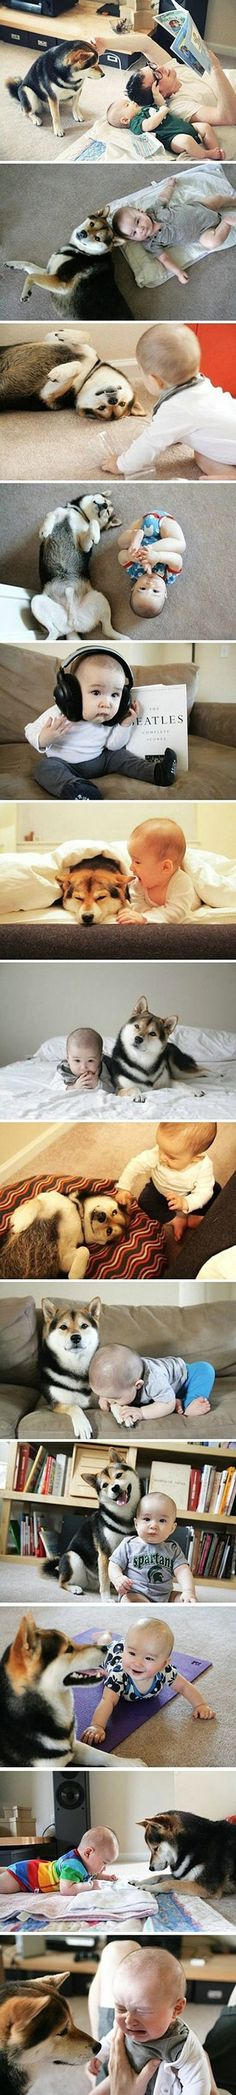 wonderful baby and dog pictures